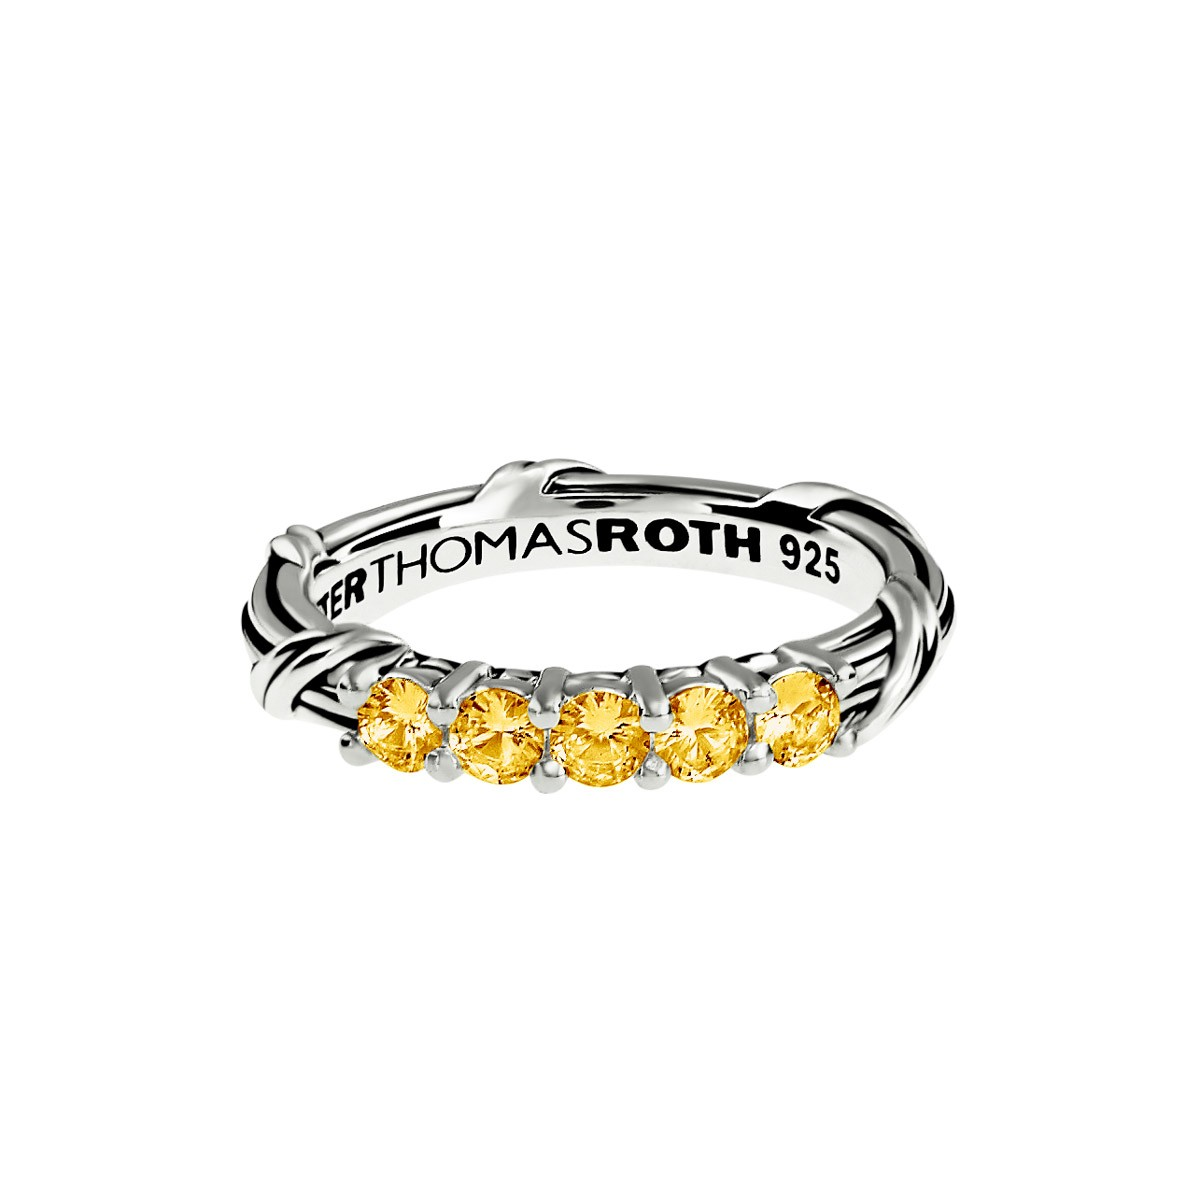 Signature Classic Five Stone Band Ring with yellow sapphires in sterling silver